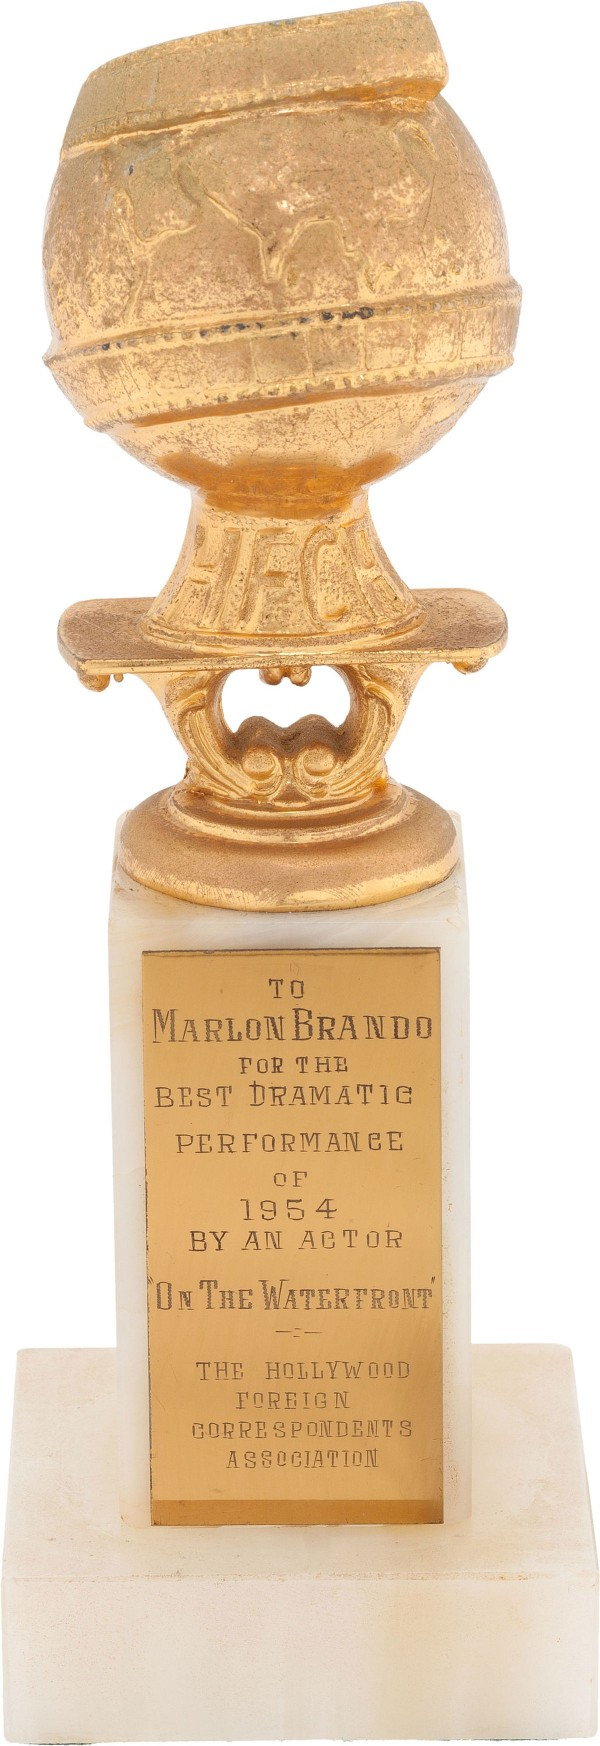 Marlon Brando's 1954 'Best Actor' Golden Globe award for his performance in On the Waterfront